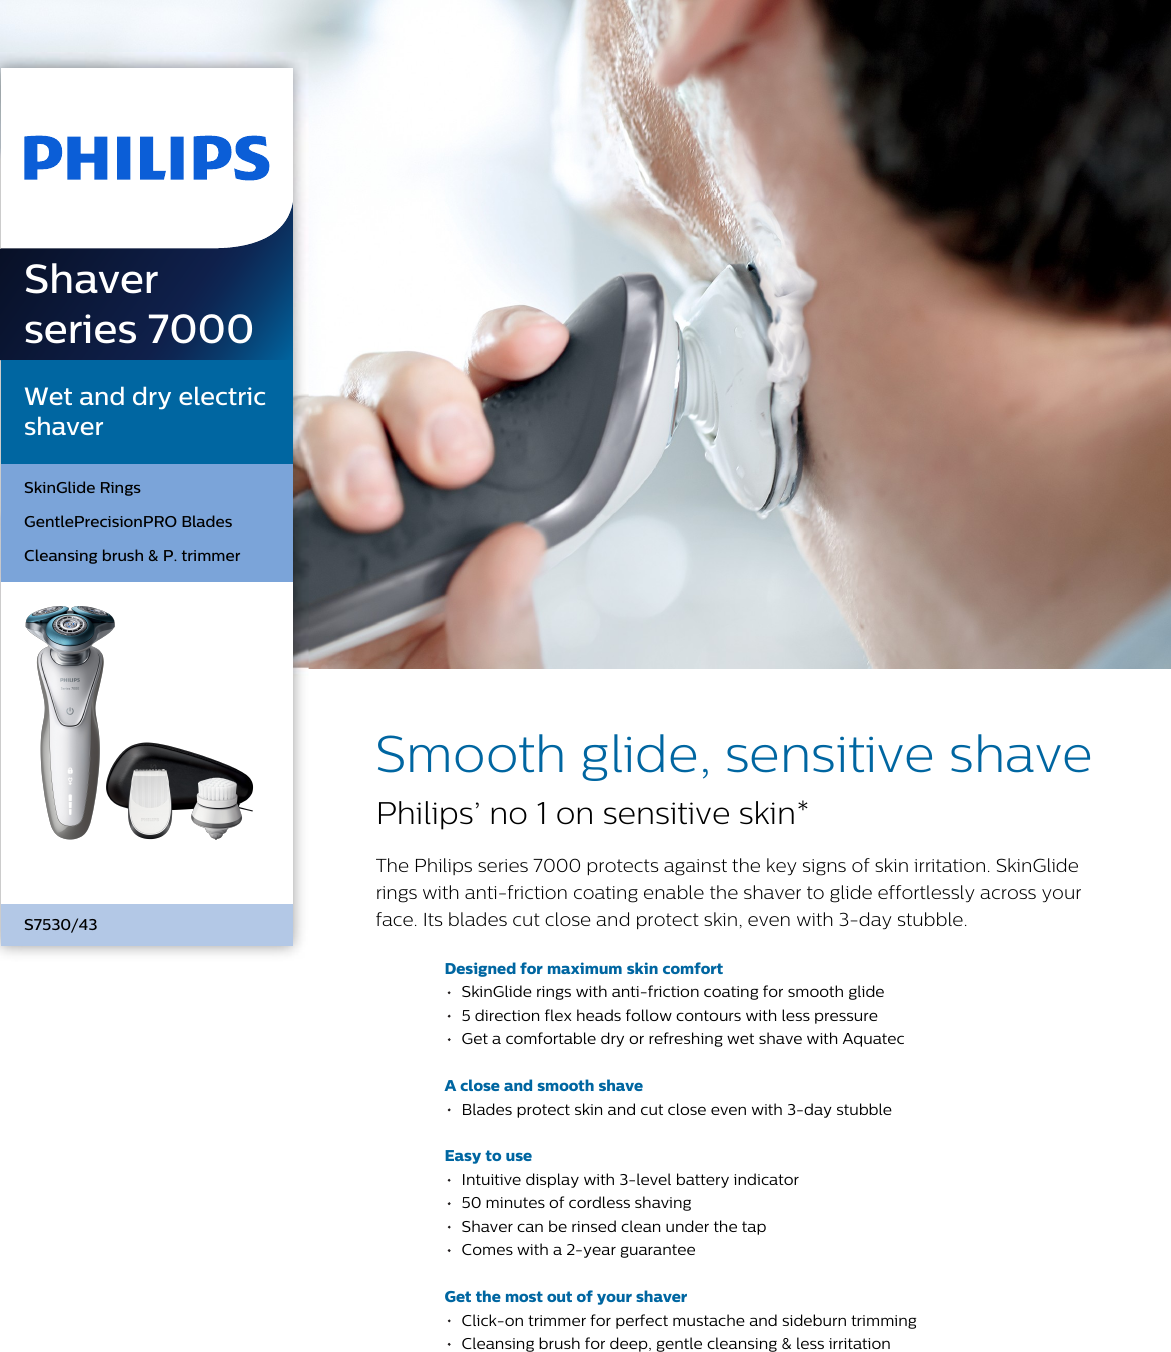 Philips S7530 43 Wet And Dry Electric Shaver User Manual Leaflet S7530 43  Pss 6135f29f236c